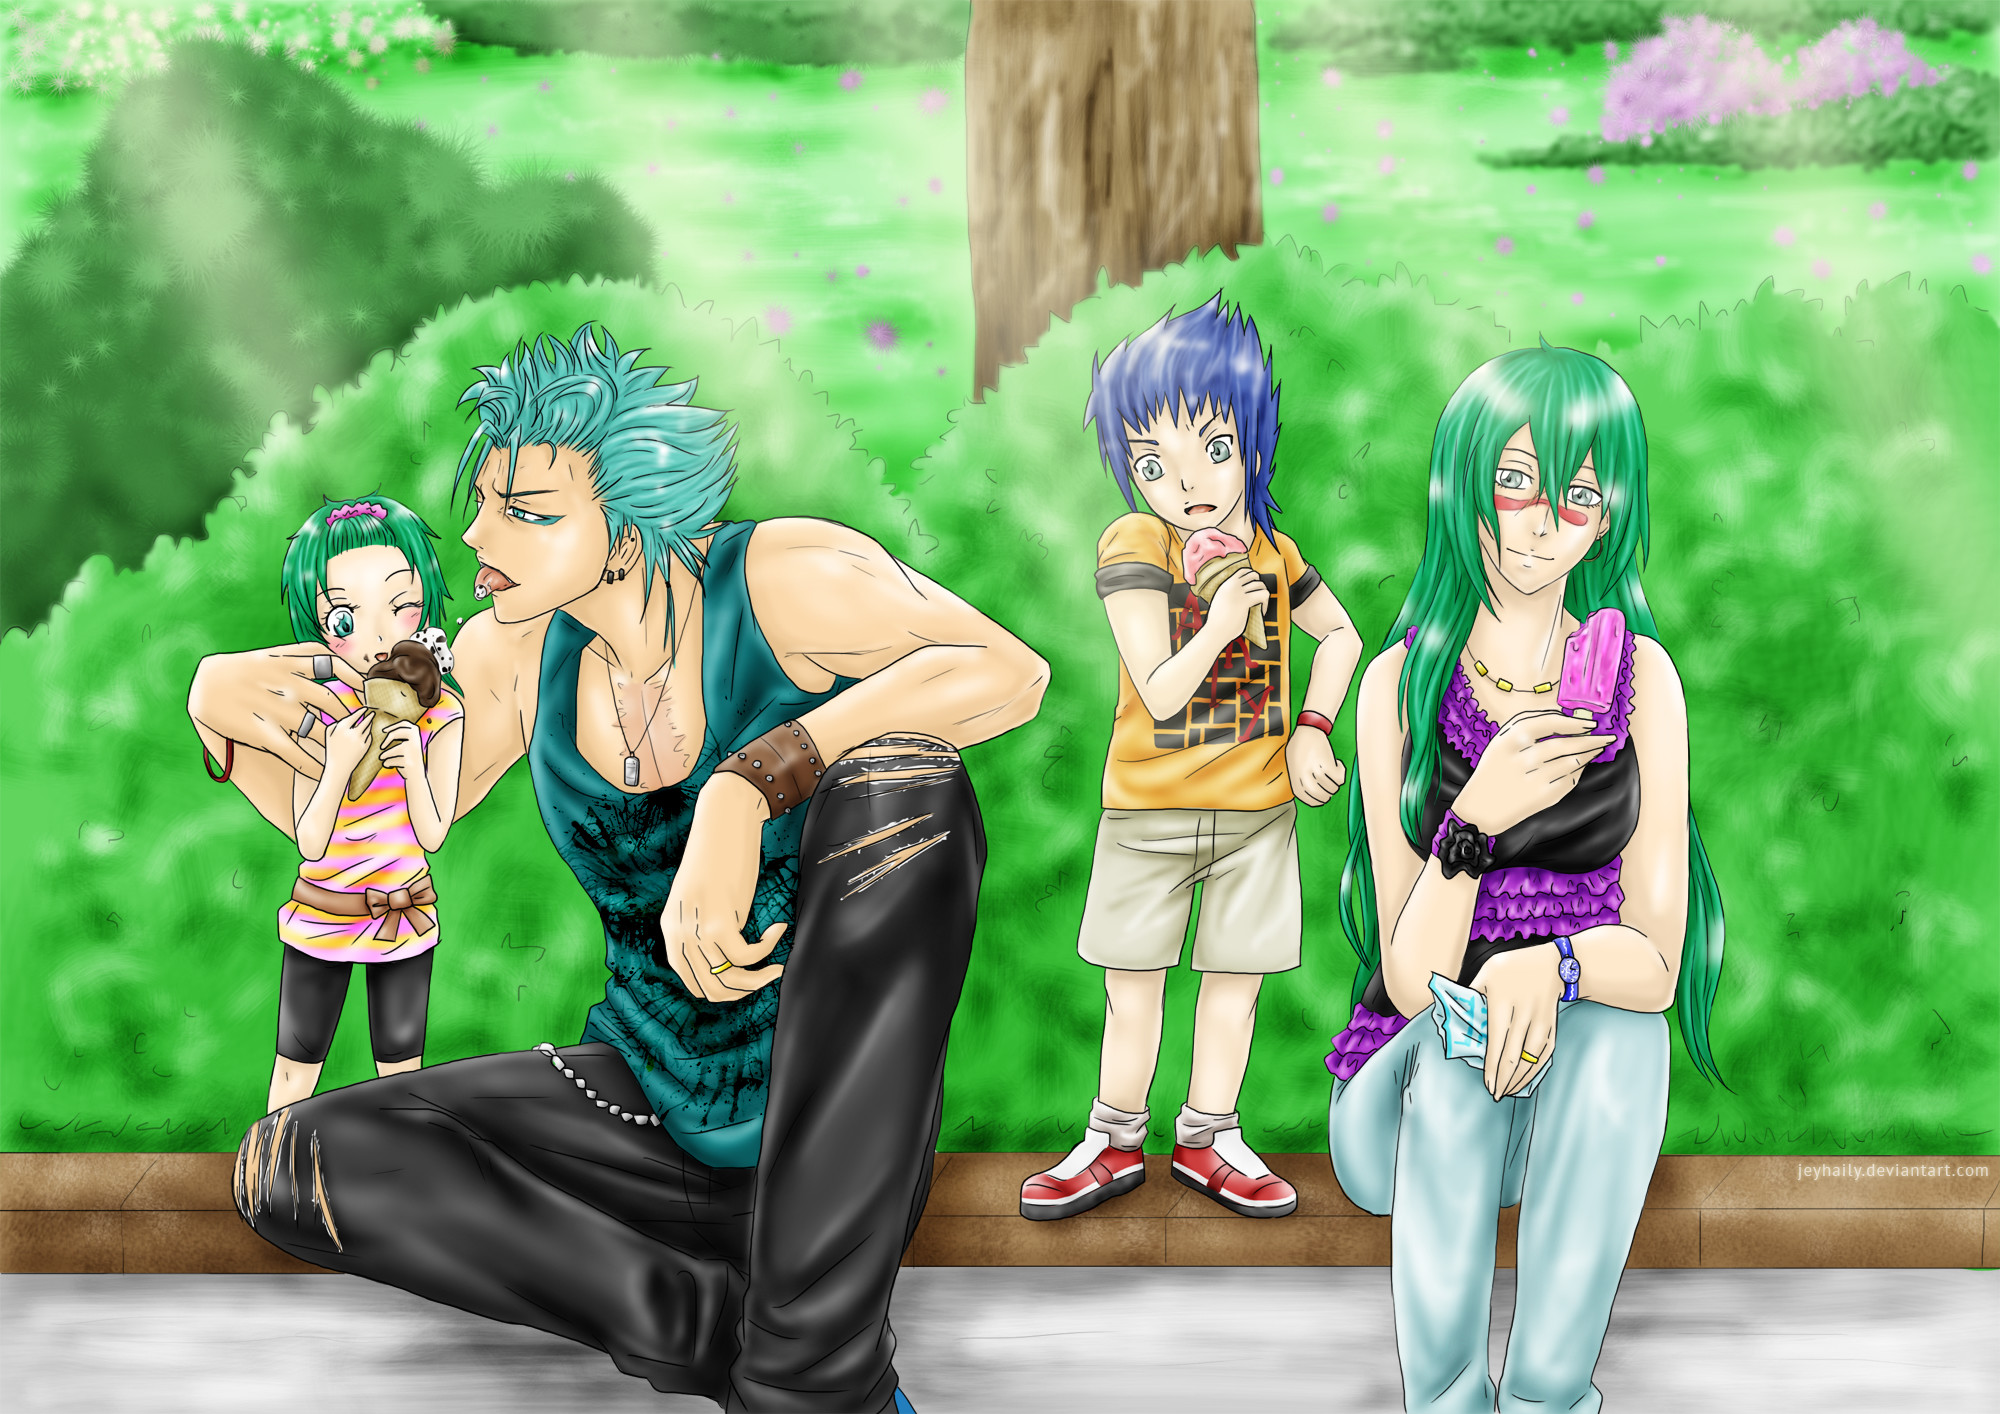 Res: 2000x1414, Astral-17 5 3 Bleach - Ice cream in family by JeyHaily